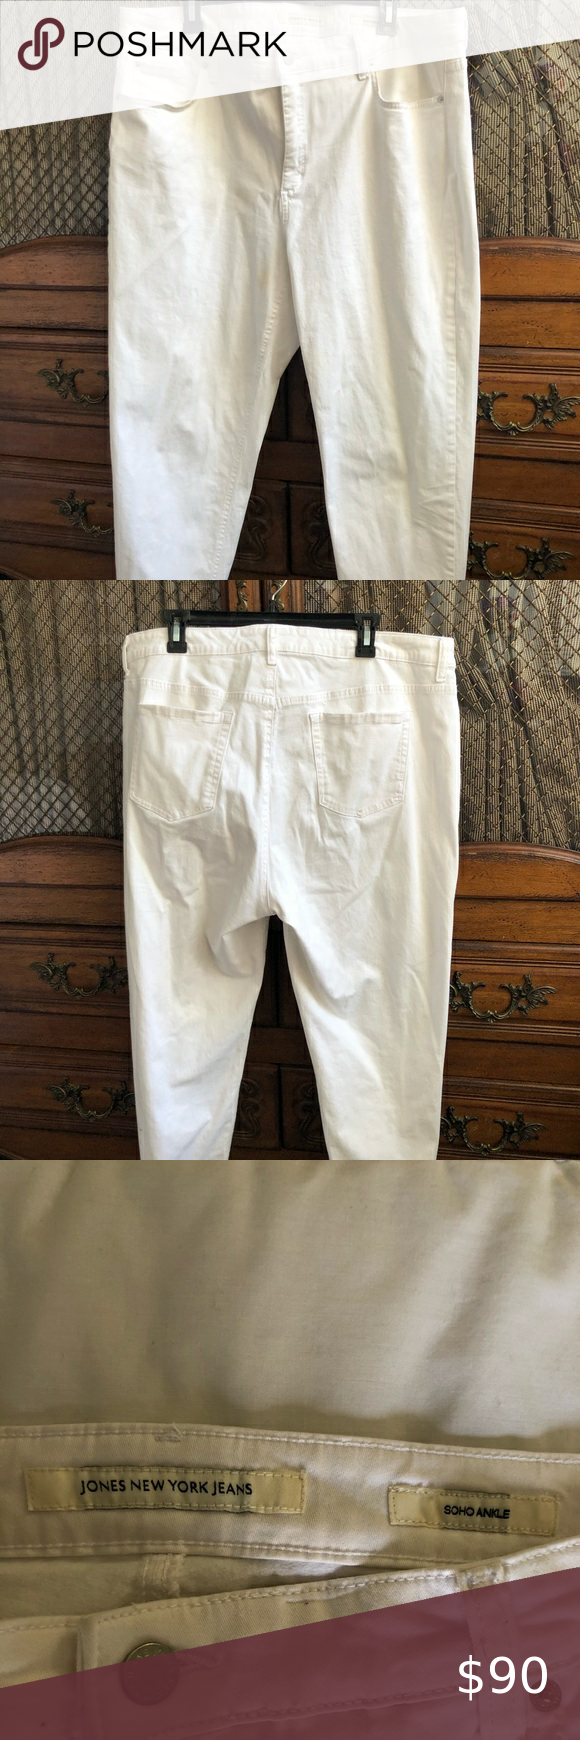 Jones New York Jeans Jones New York White Denim Jeans